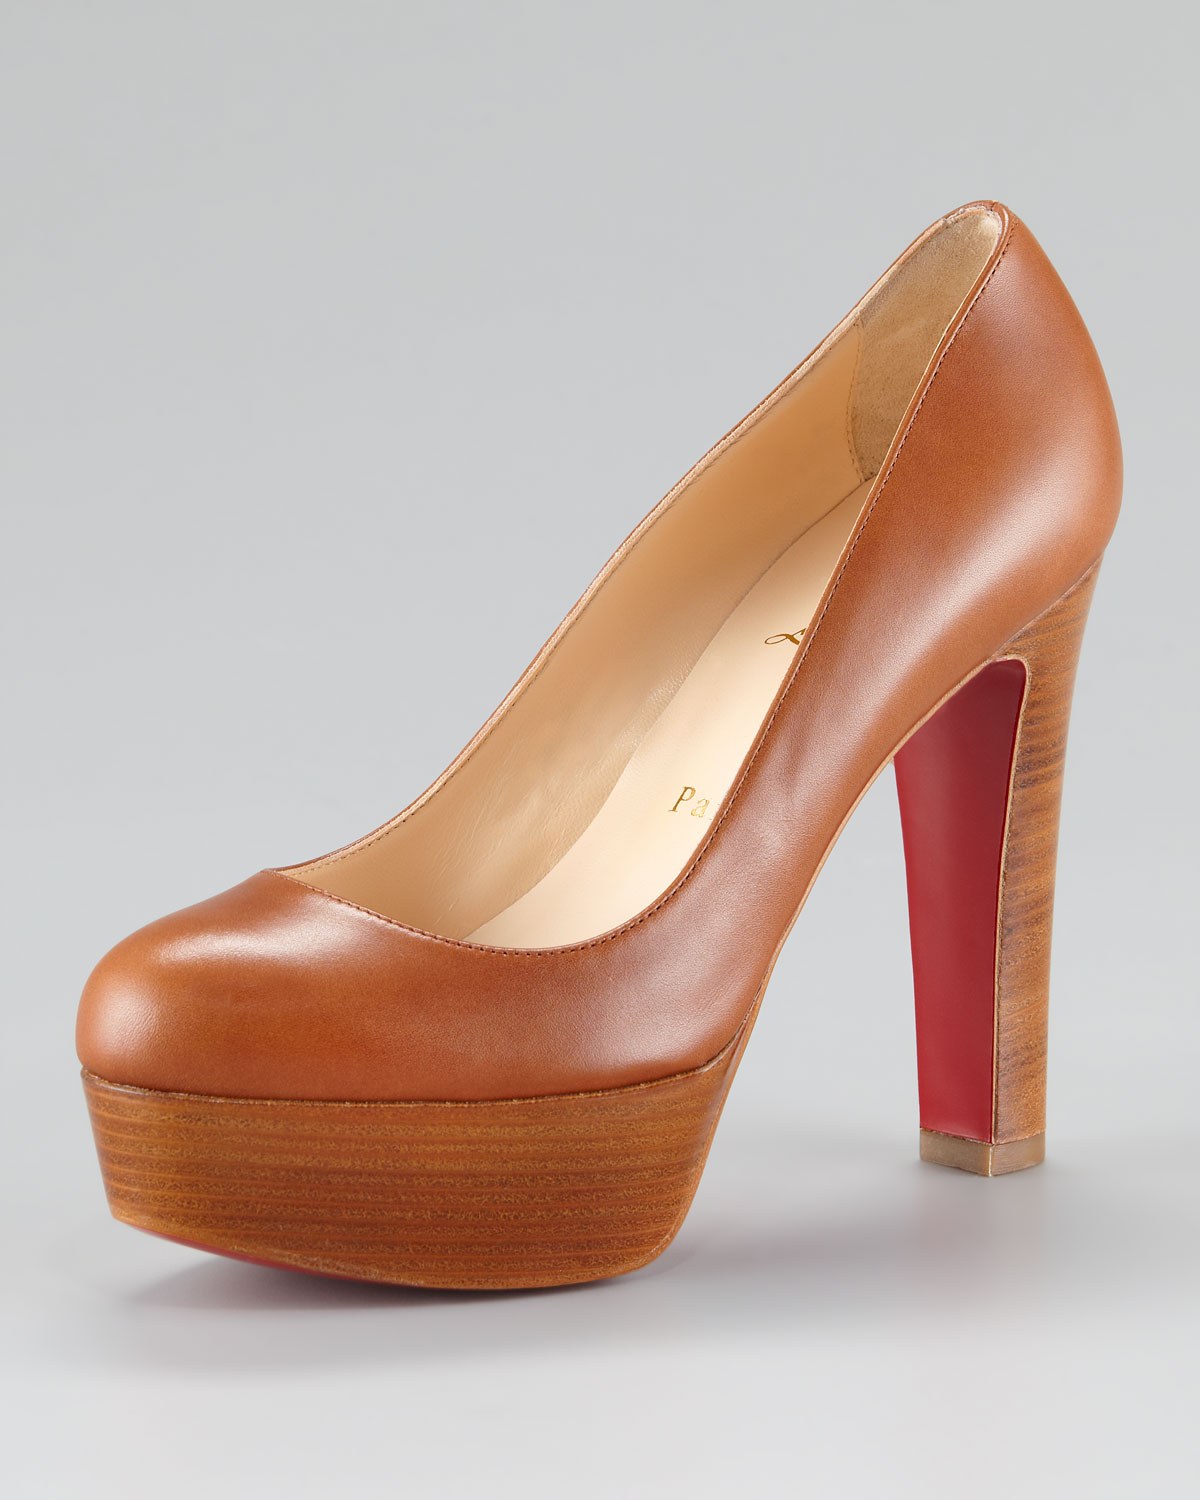 brand new 58d52 7b6bd Christian Louboutin Brown Bibi Chunky Heel Pump